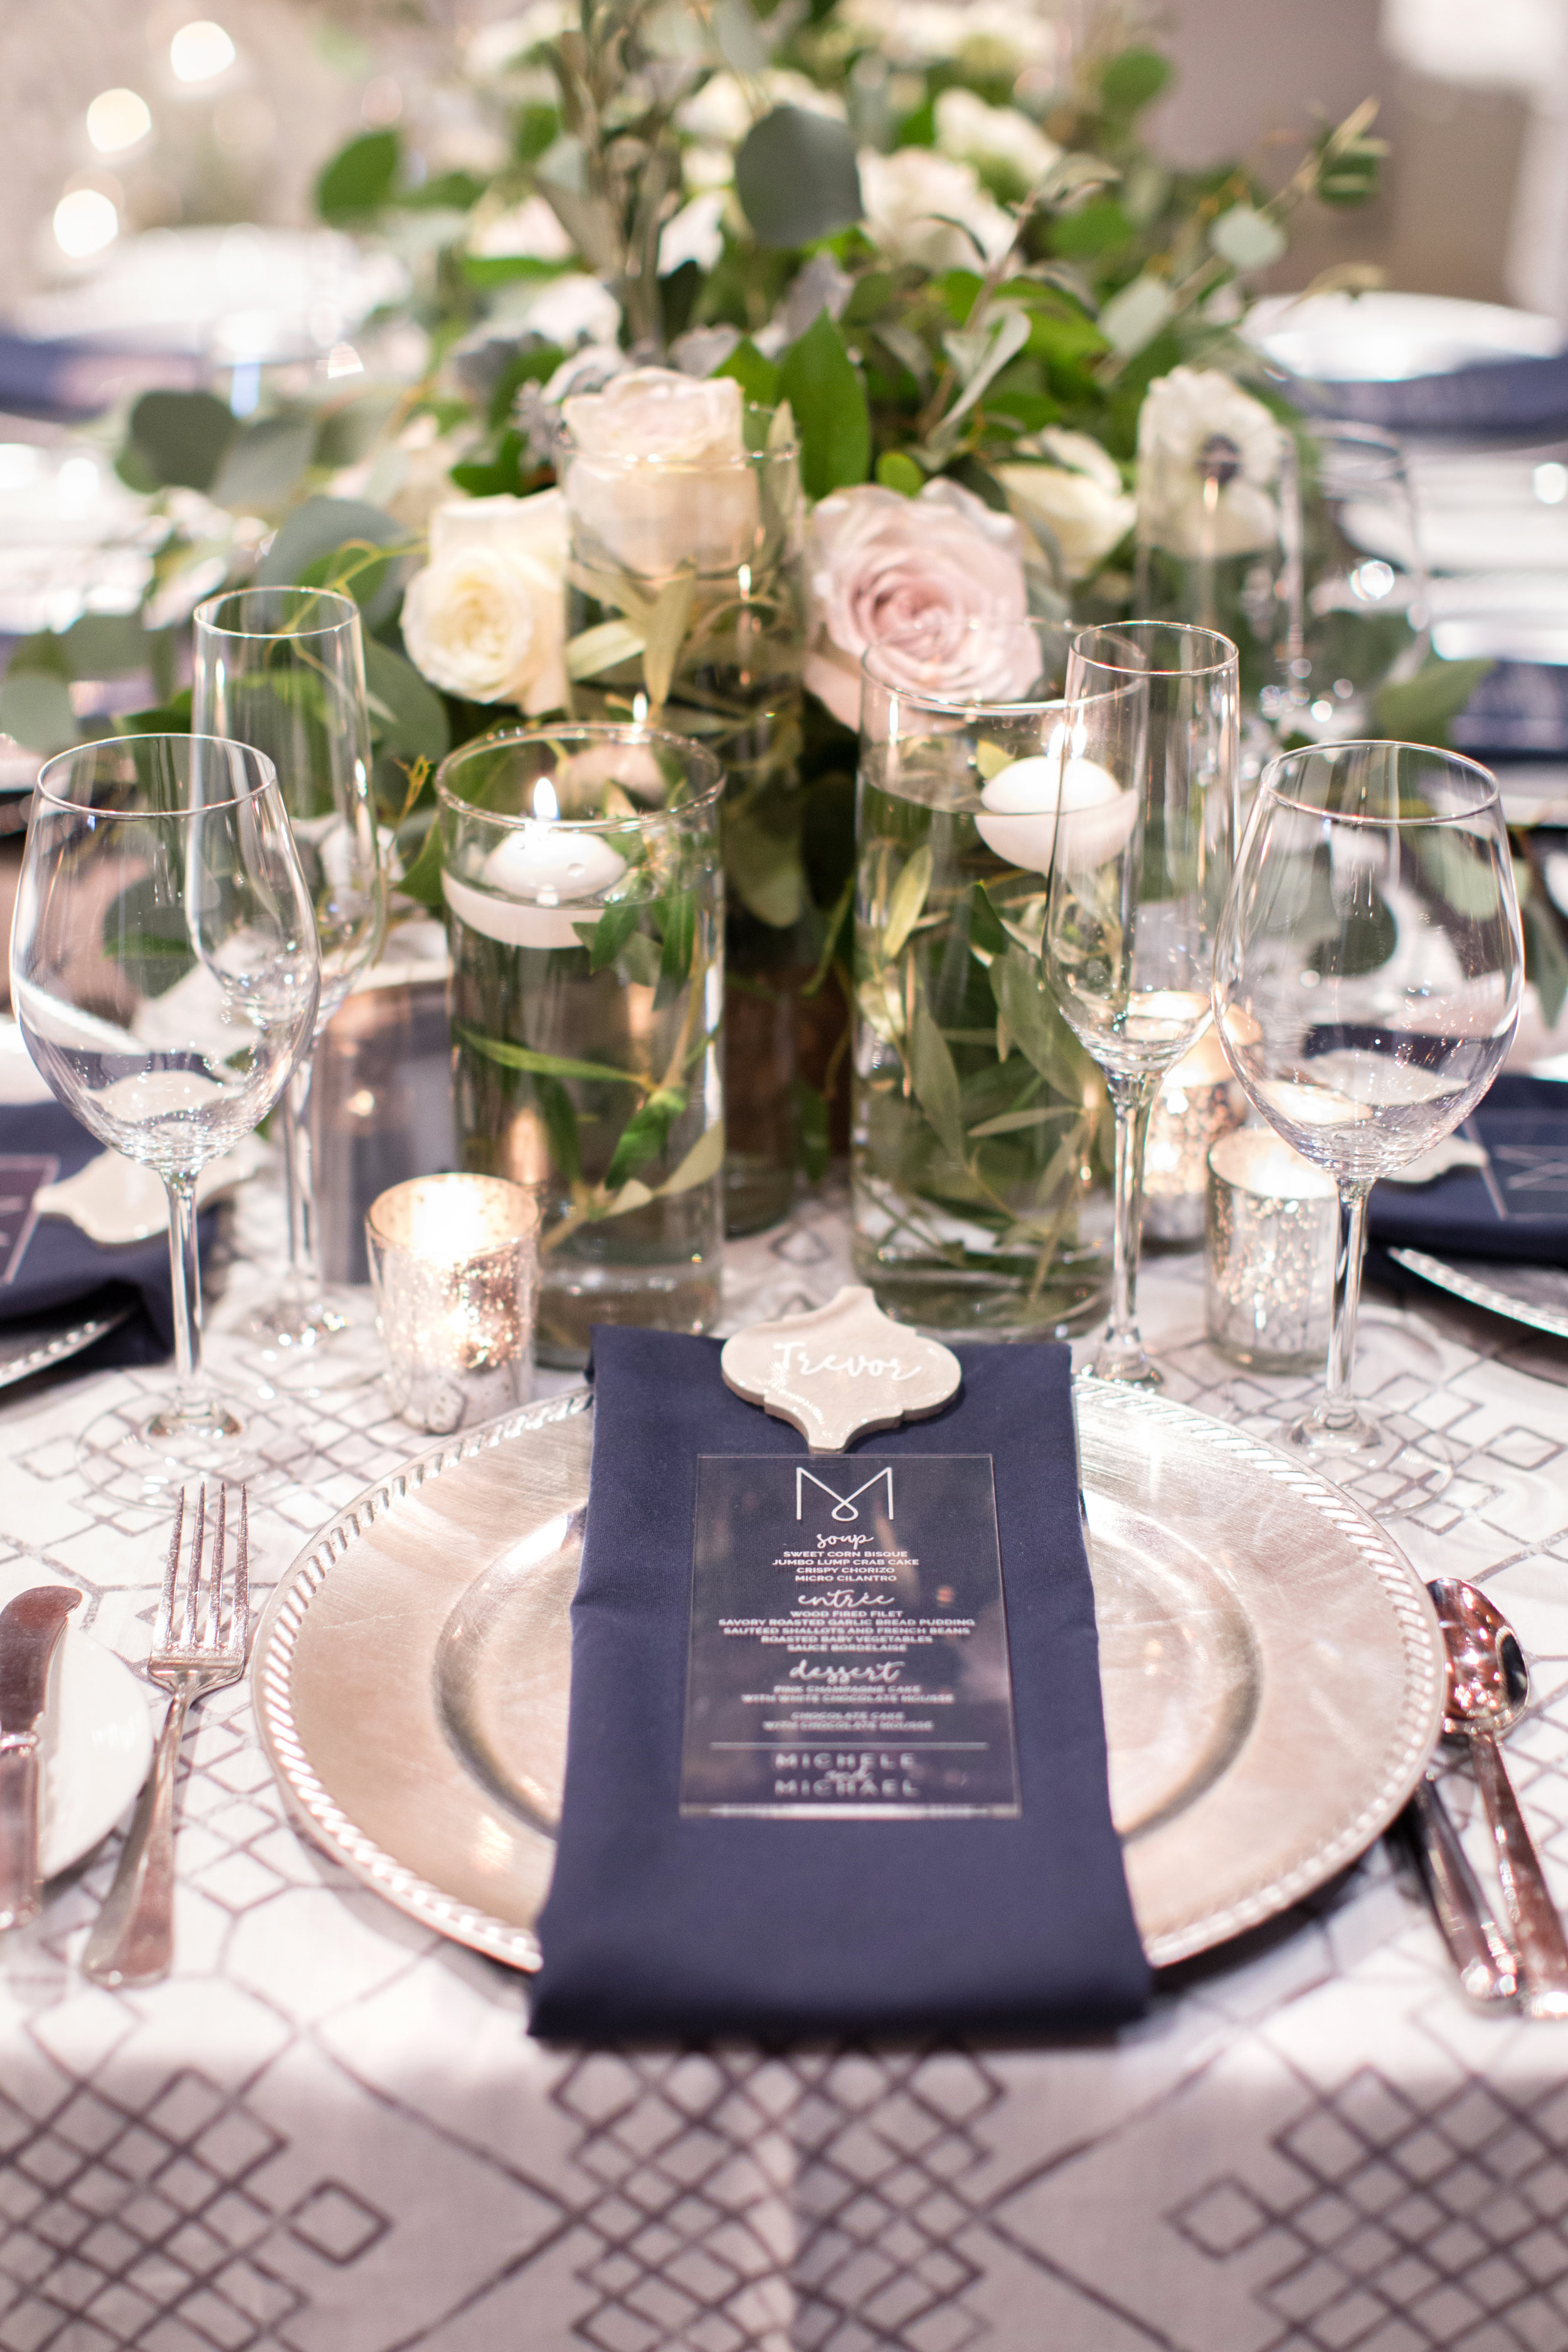 47 wedding reception dinner place setting acrylic engraved dinner menu white flower centerpiece tile place card Life Design Events photos by Melissa Jill Photography.jpg